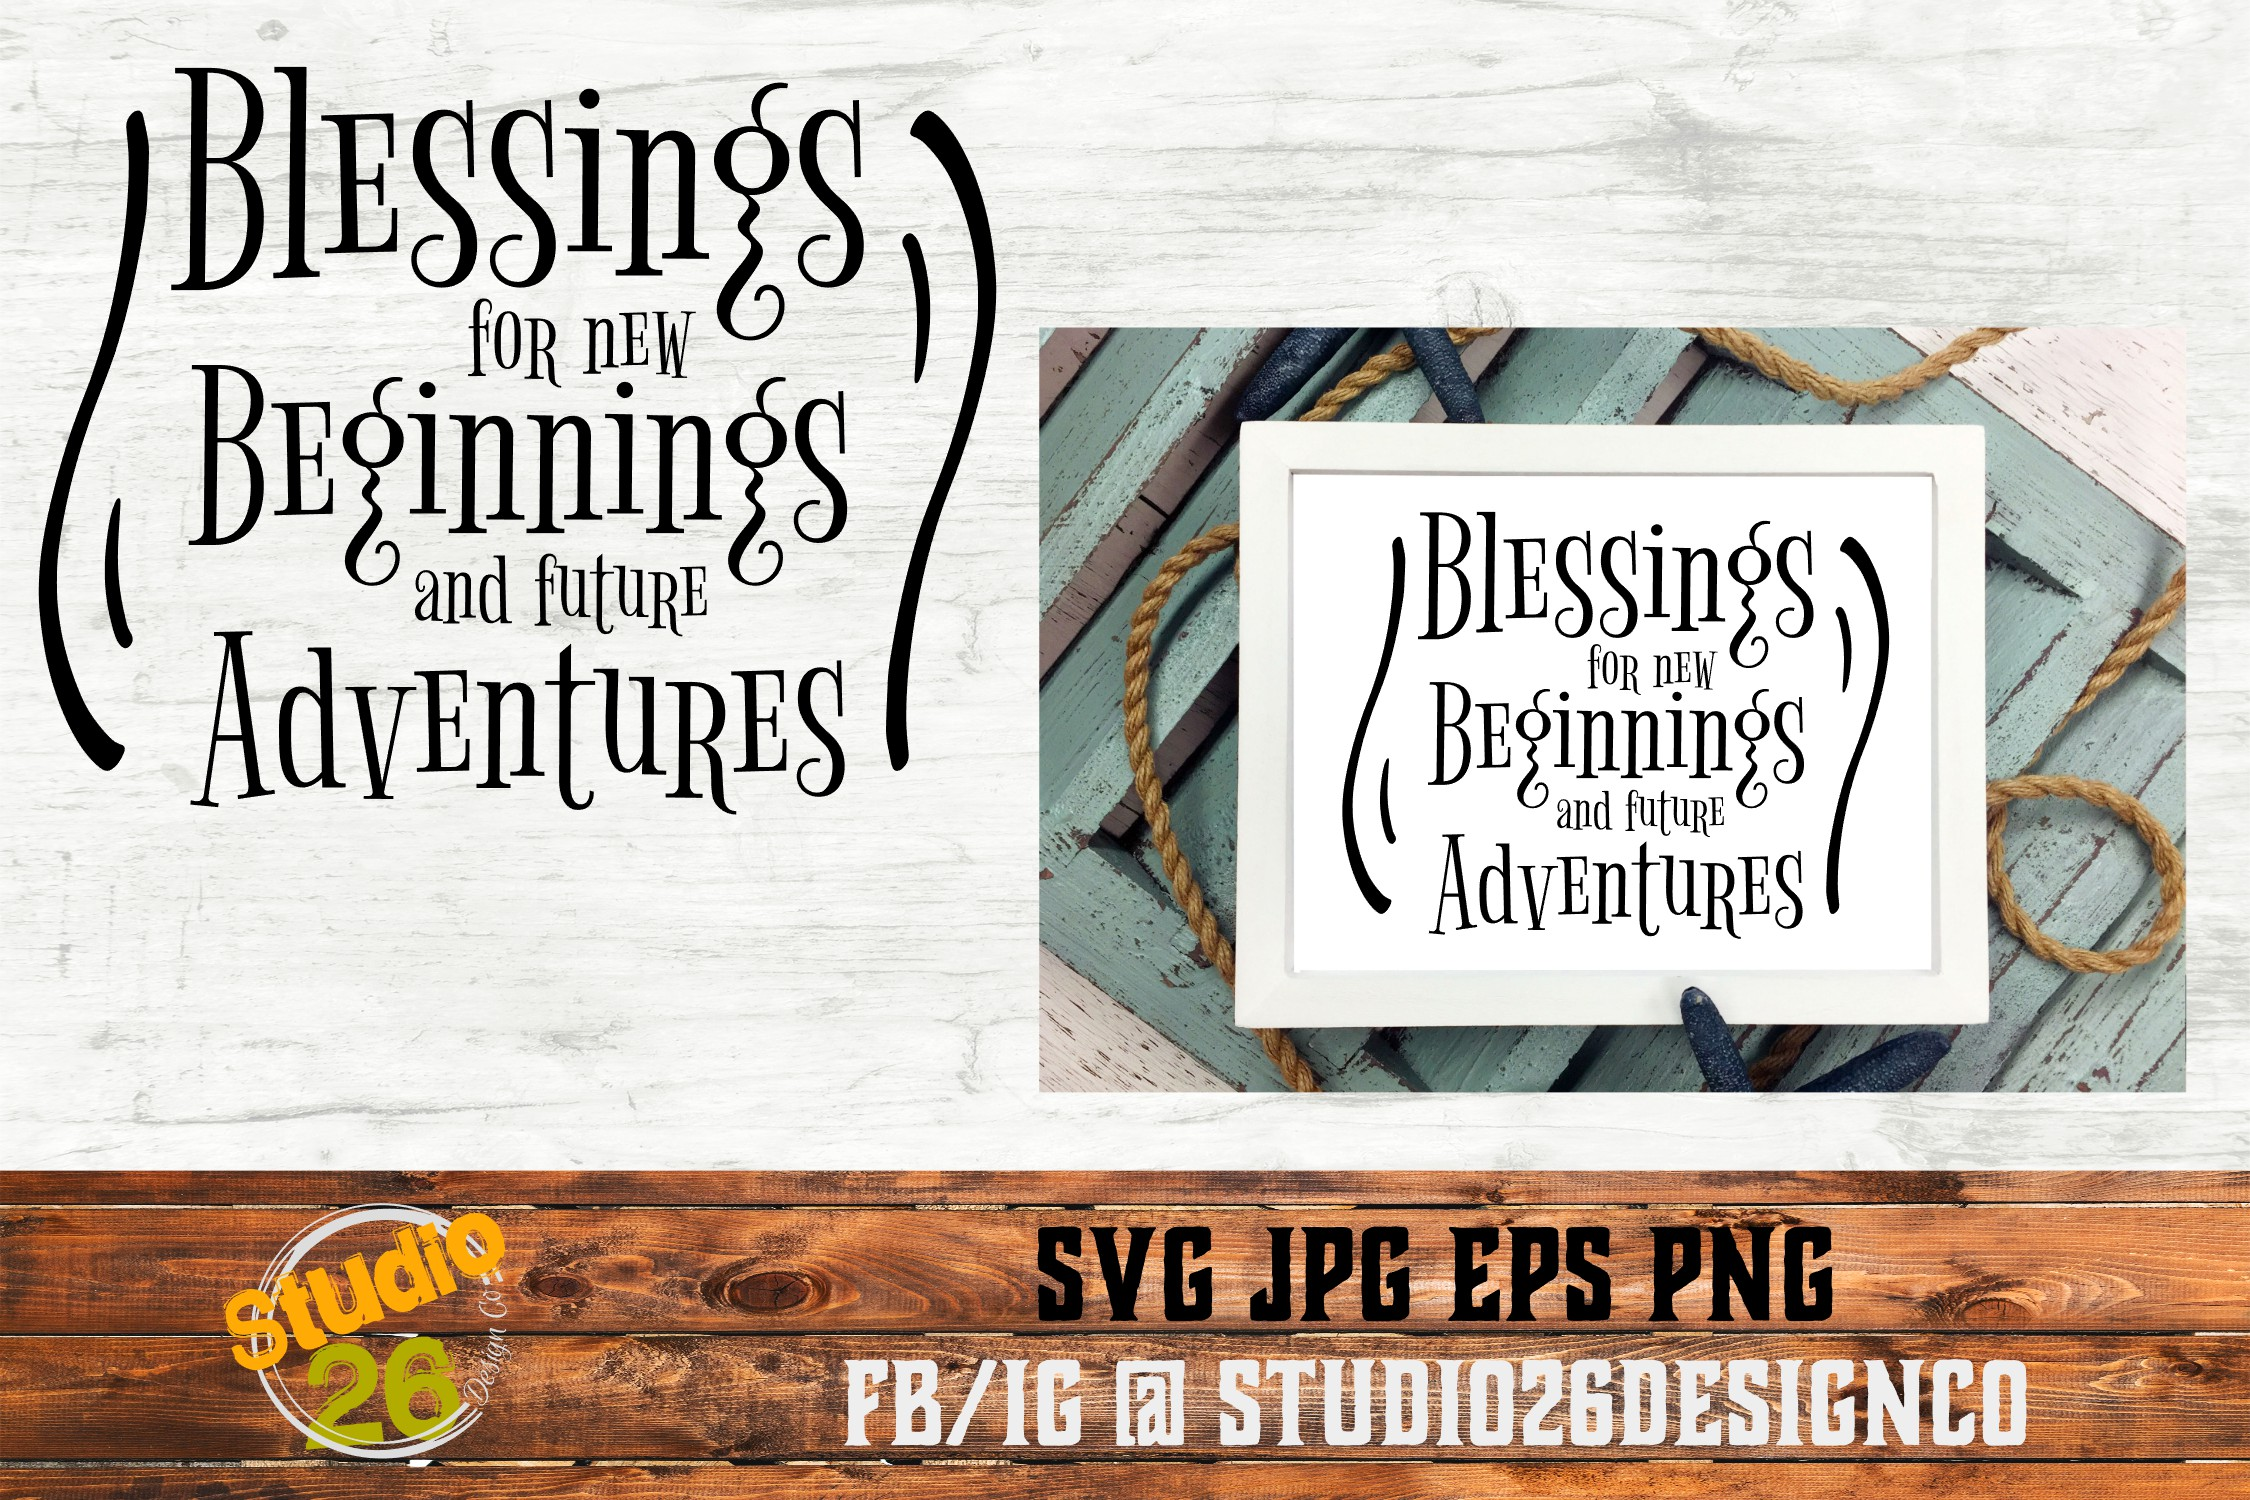 Blessings for new beginnings - SVG EPS PNG example image 1